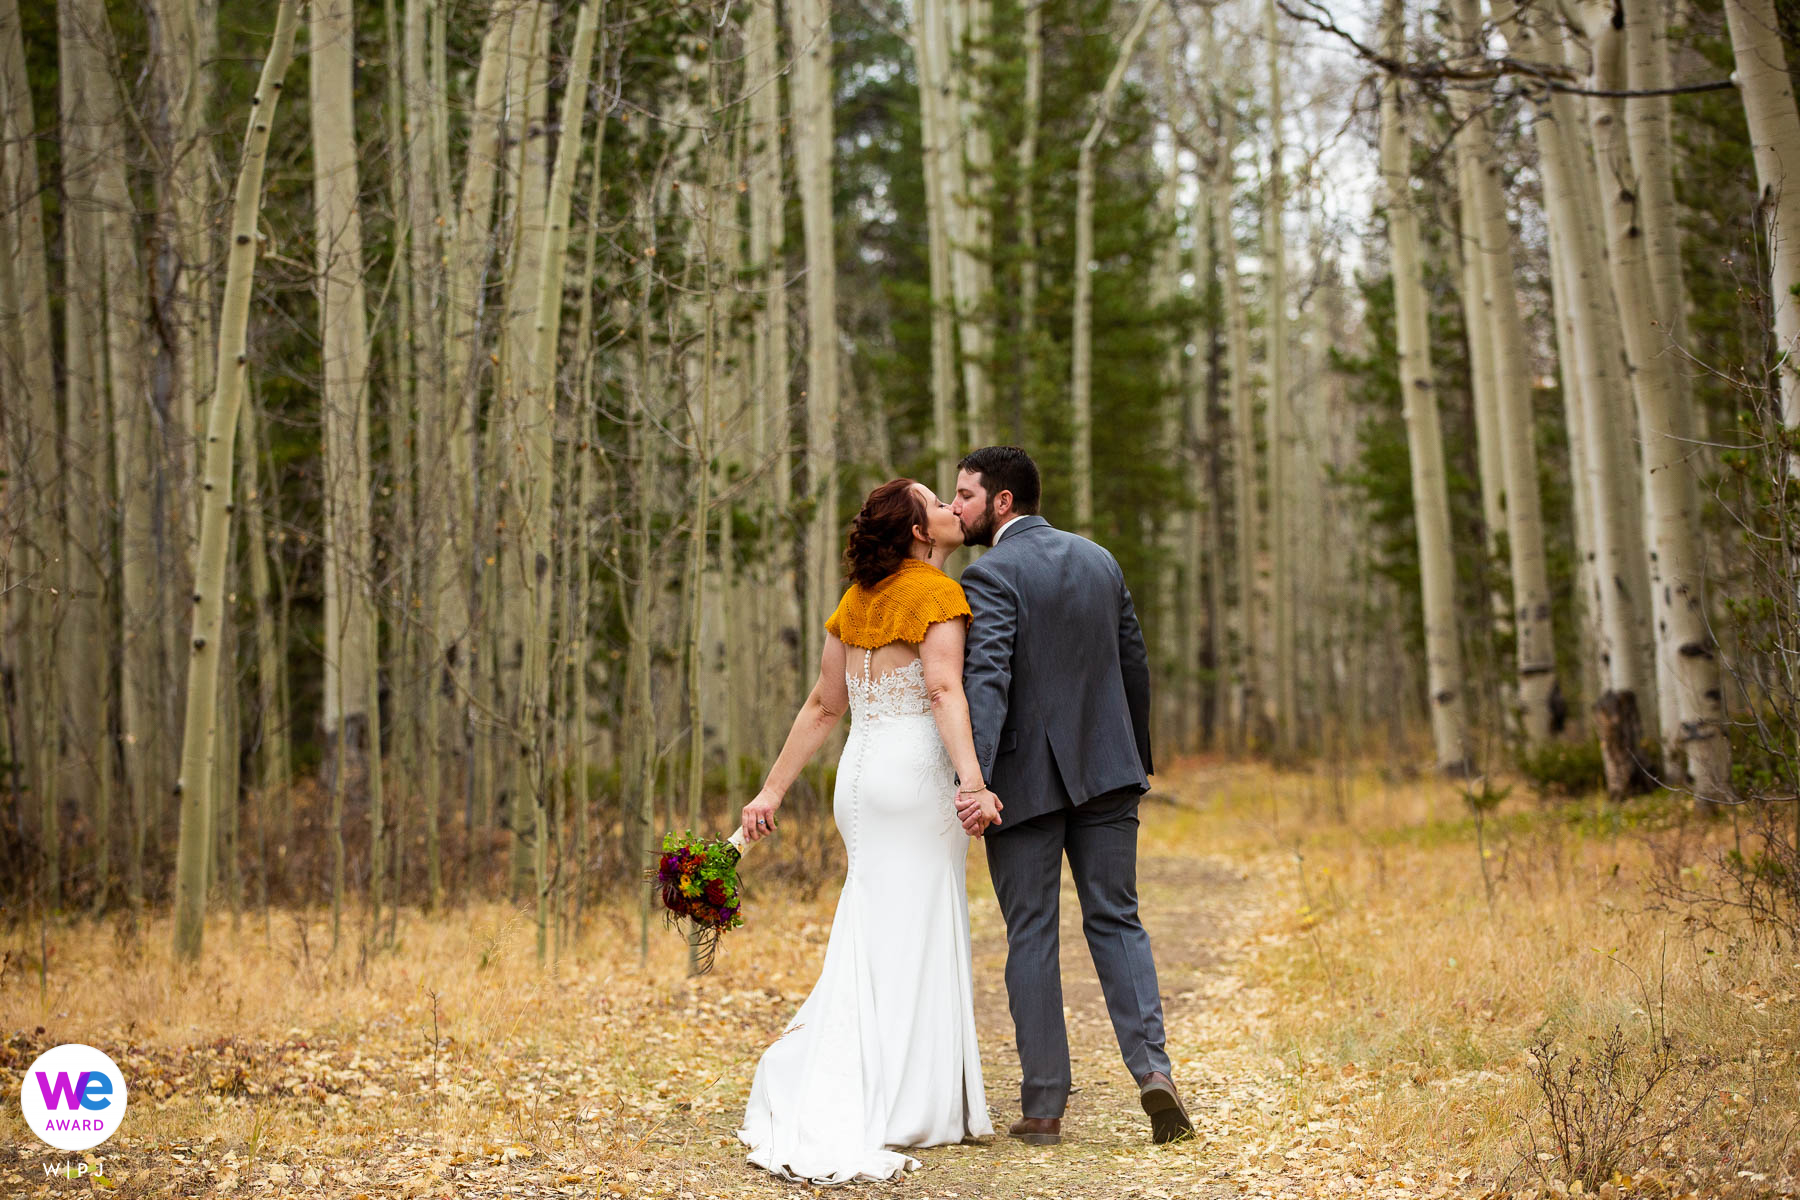 Kenosha Pass, Colorado Wedding Photography | The newlyweds sneak a kiss while walking through the forest